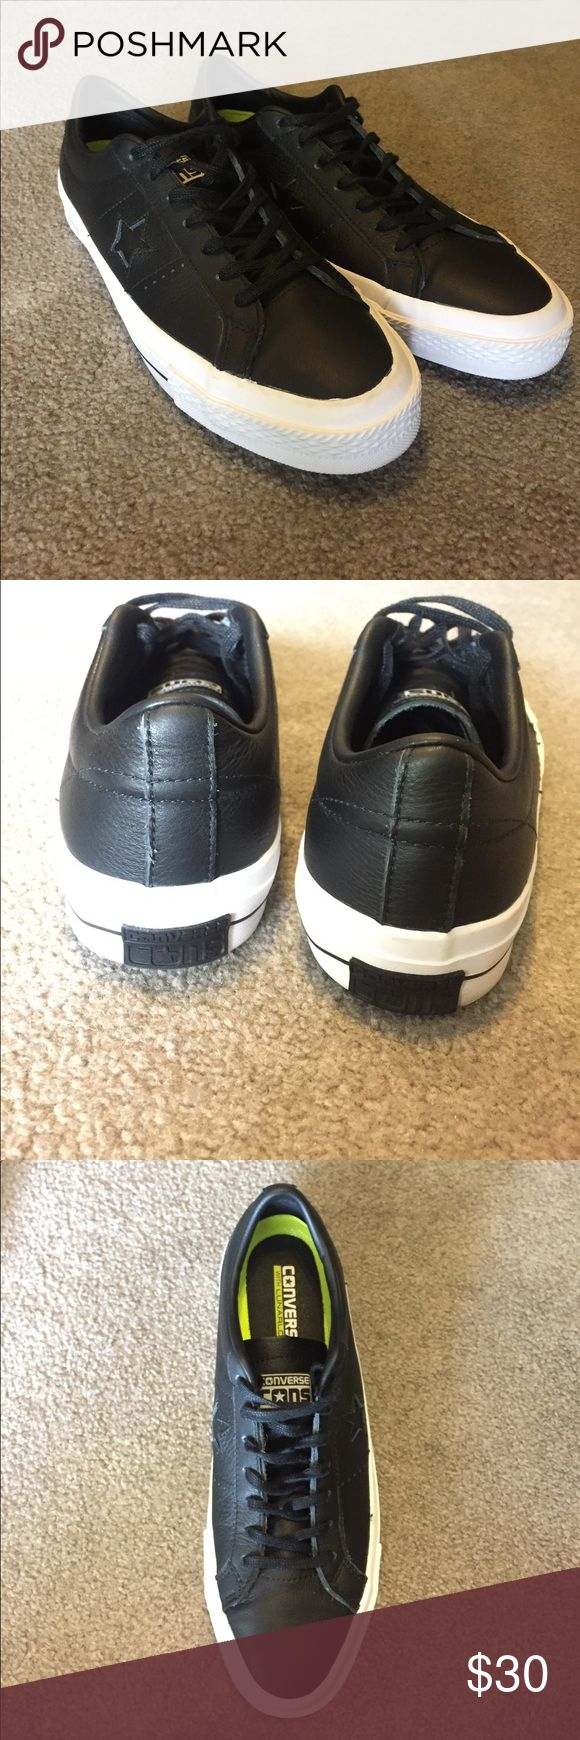 Converse CONS One Star Pro low top Black leather converse CONS that have never been worn! Thick padding insole with copyrighted lunarlon technology. Classic all black converse lows! Not chuck Taylor's style. Converse Shoes Sneakers